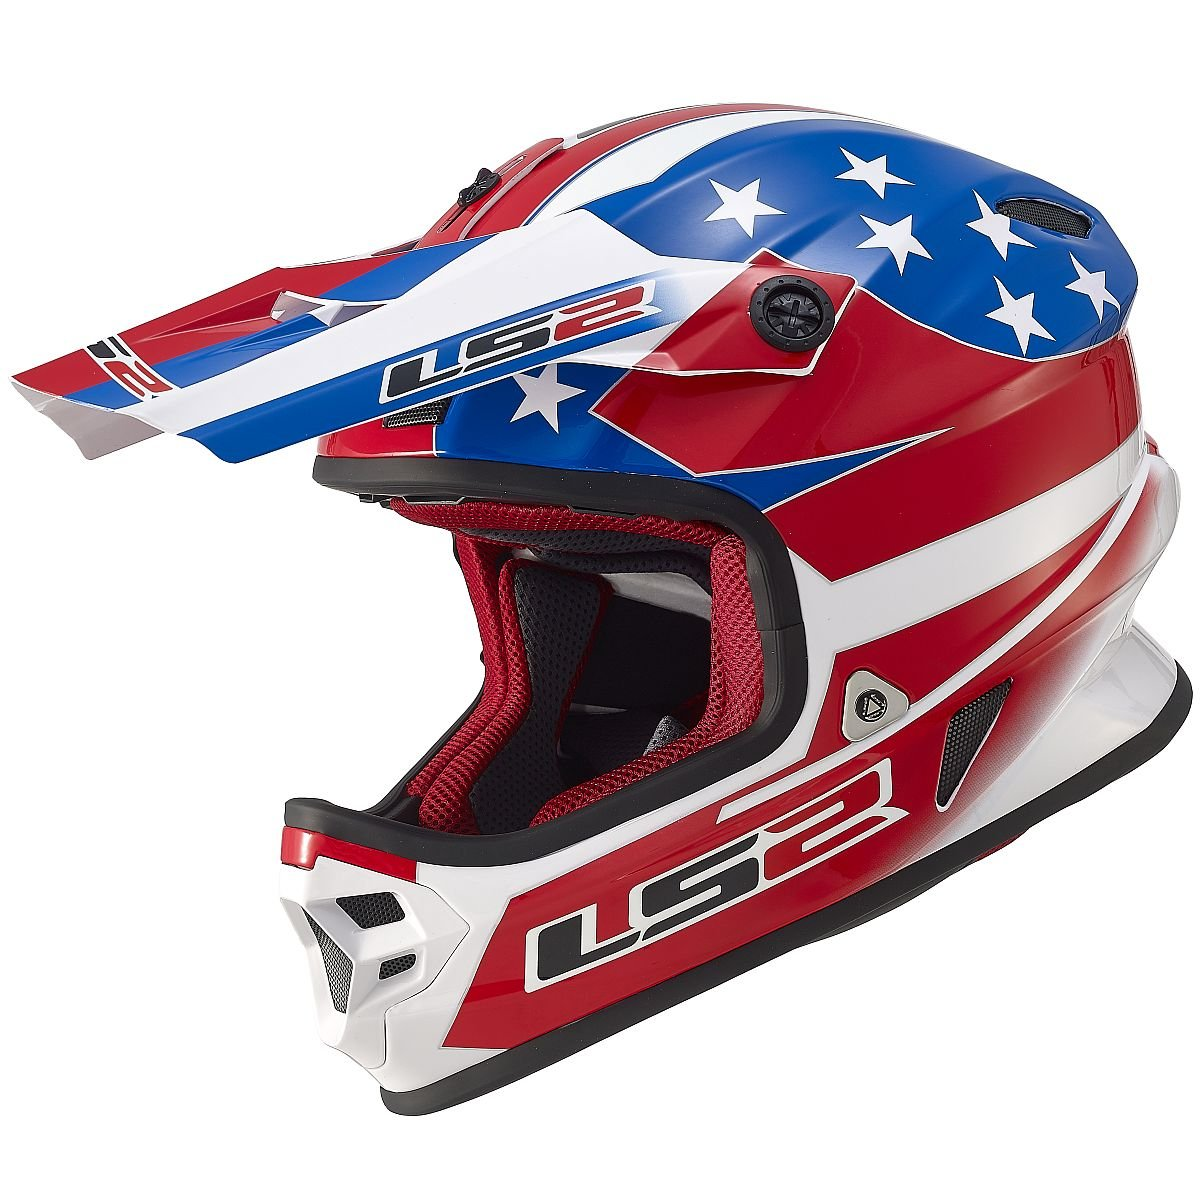 Amazon.es: LS2 Cascos Light Us Bandera Off-Road MX Casco de Moto (Rojo/Blanco/Azul, XL)